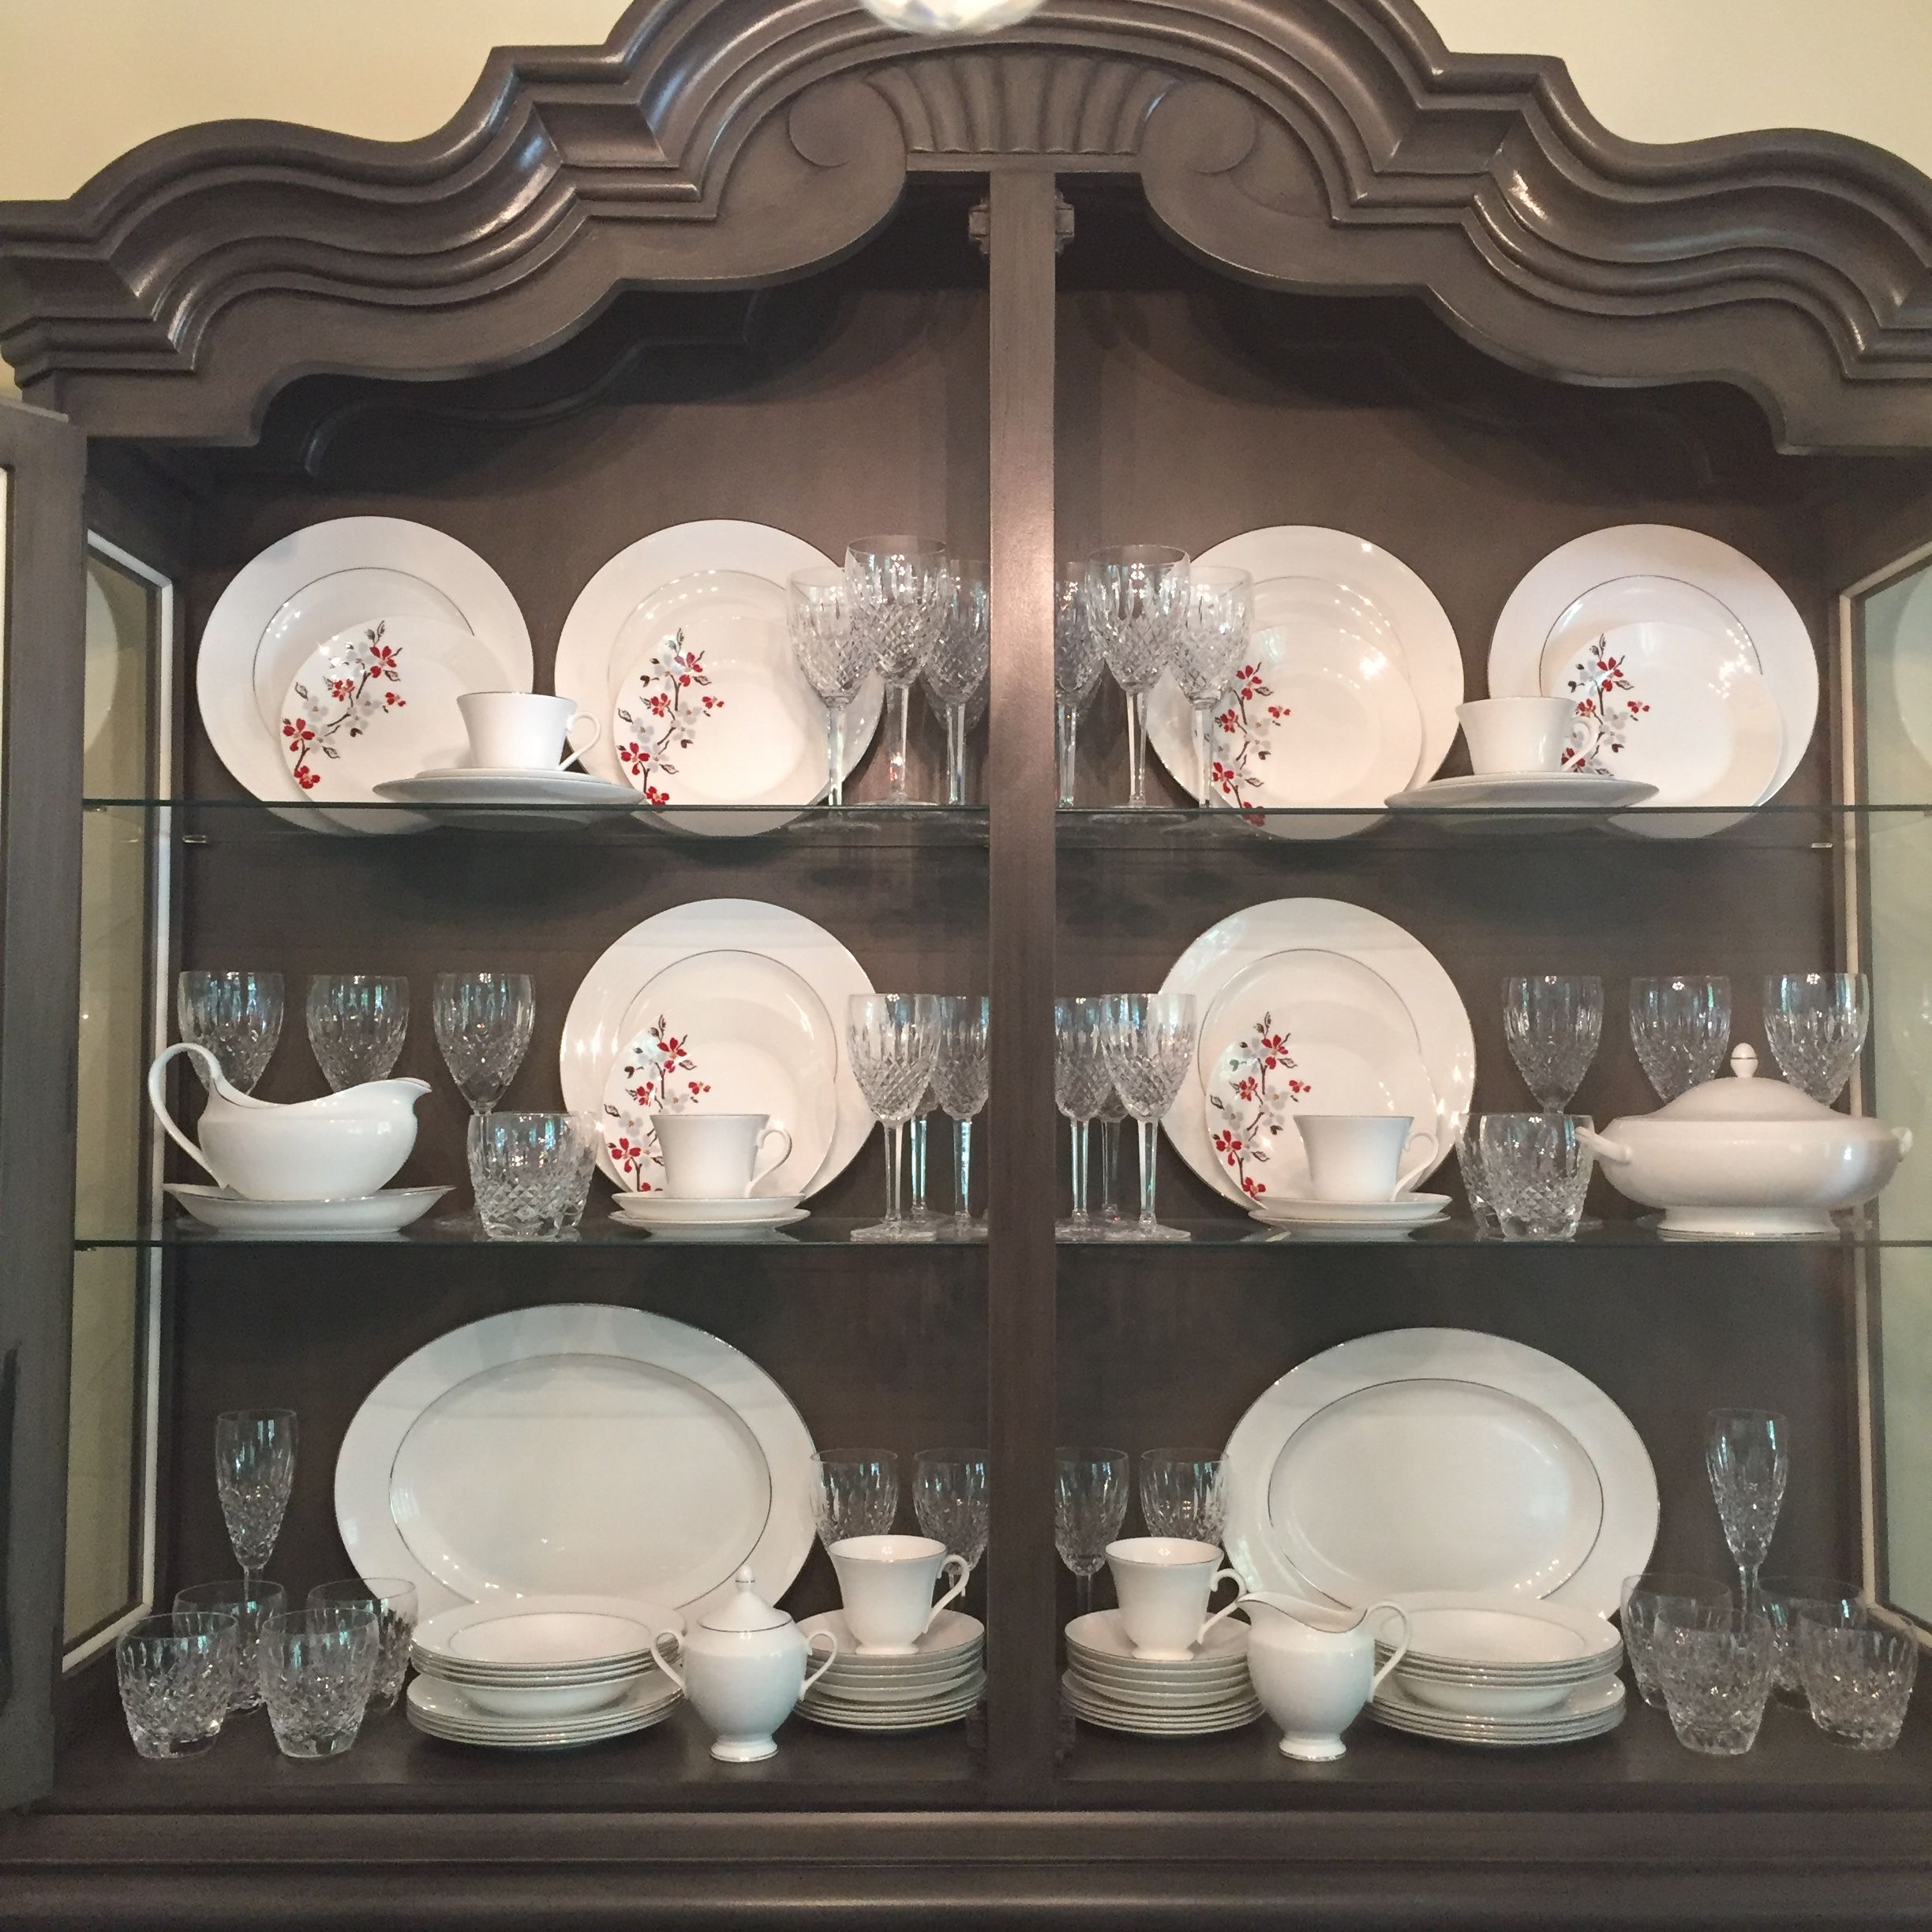 China Crystal In Cabinet Hutch I Had A Hard Time Finding